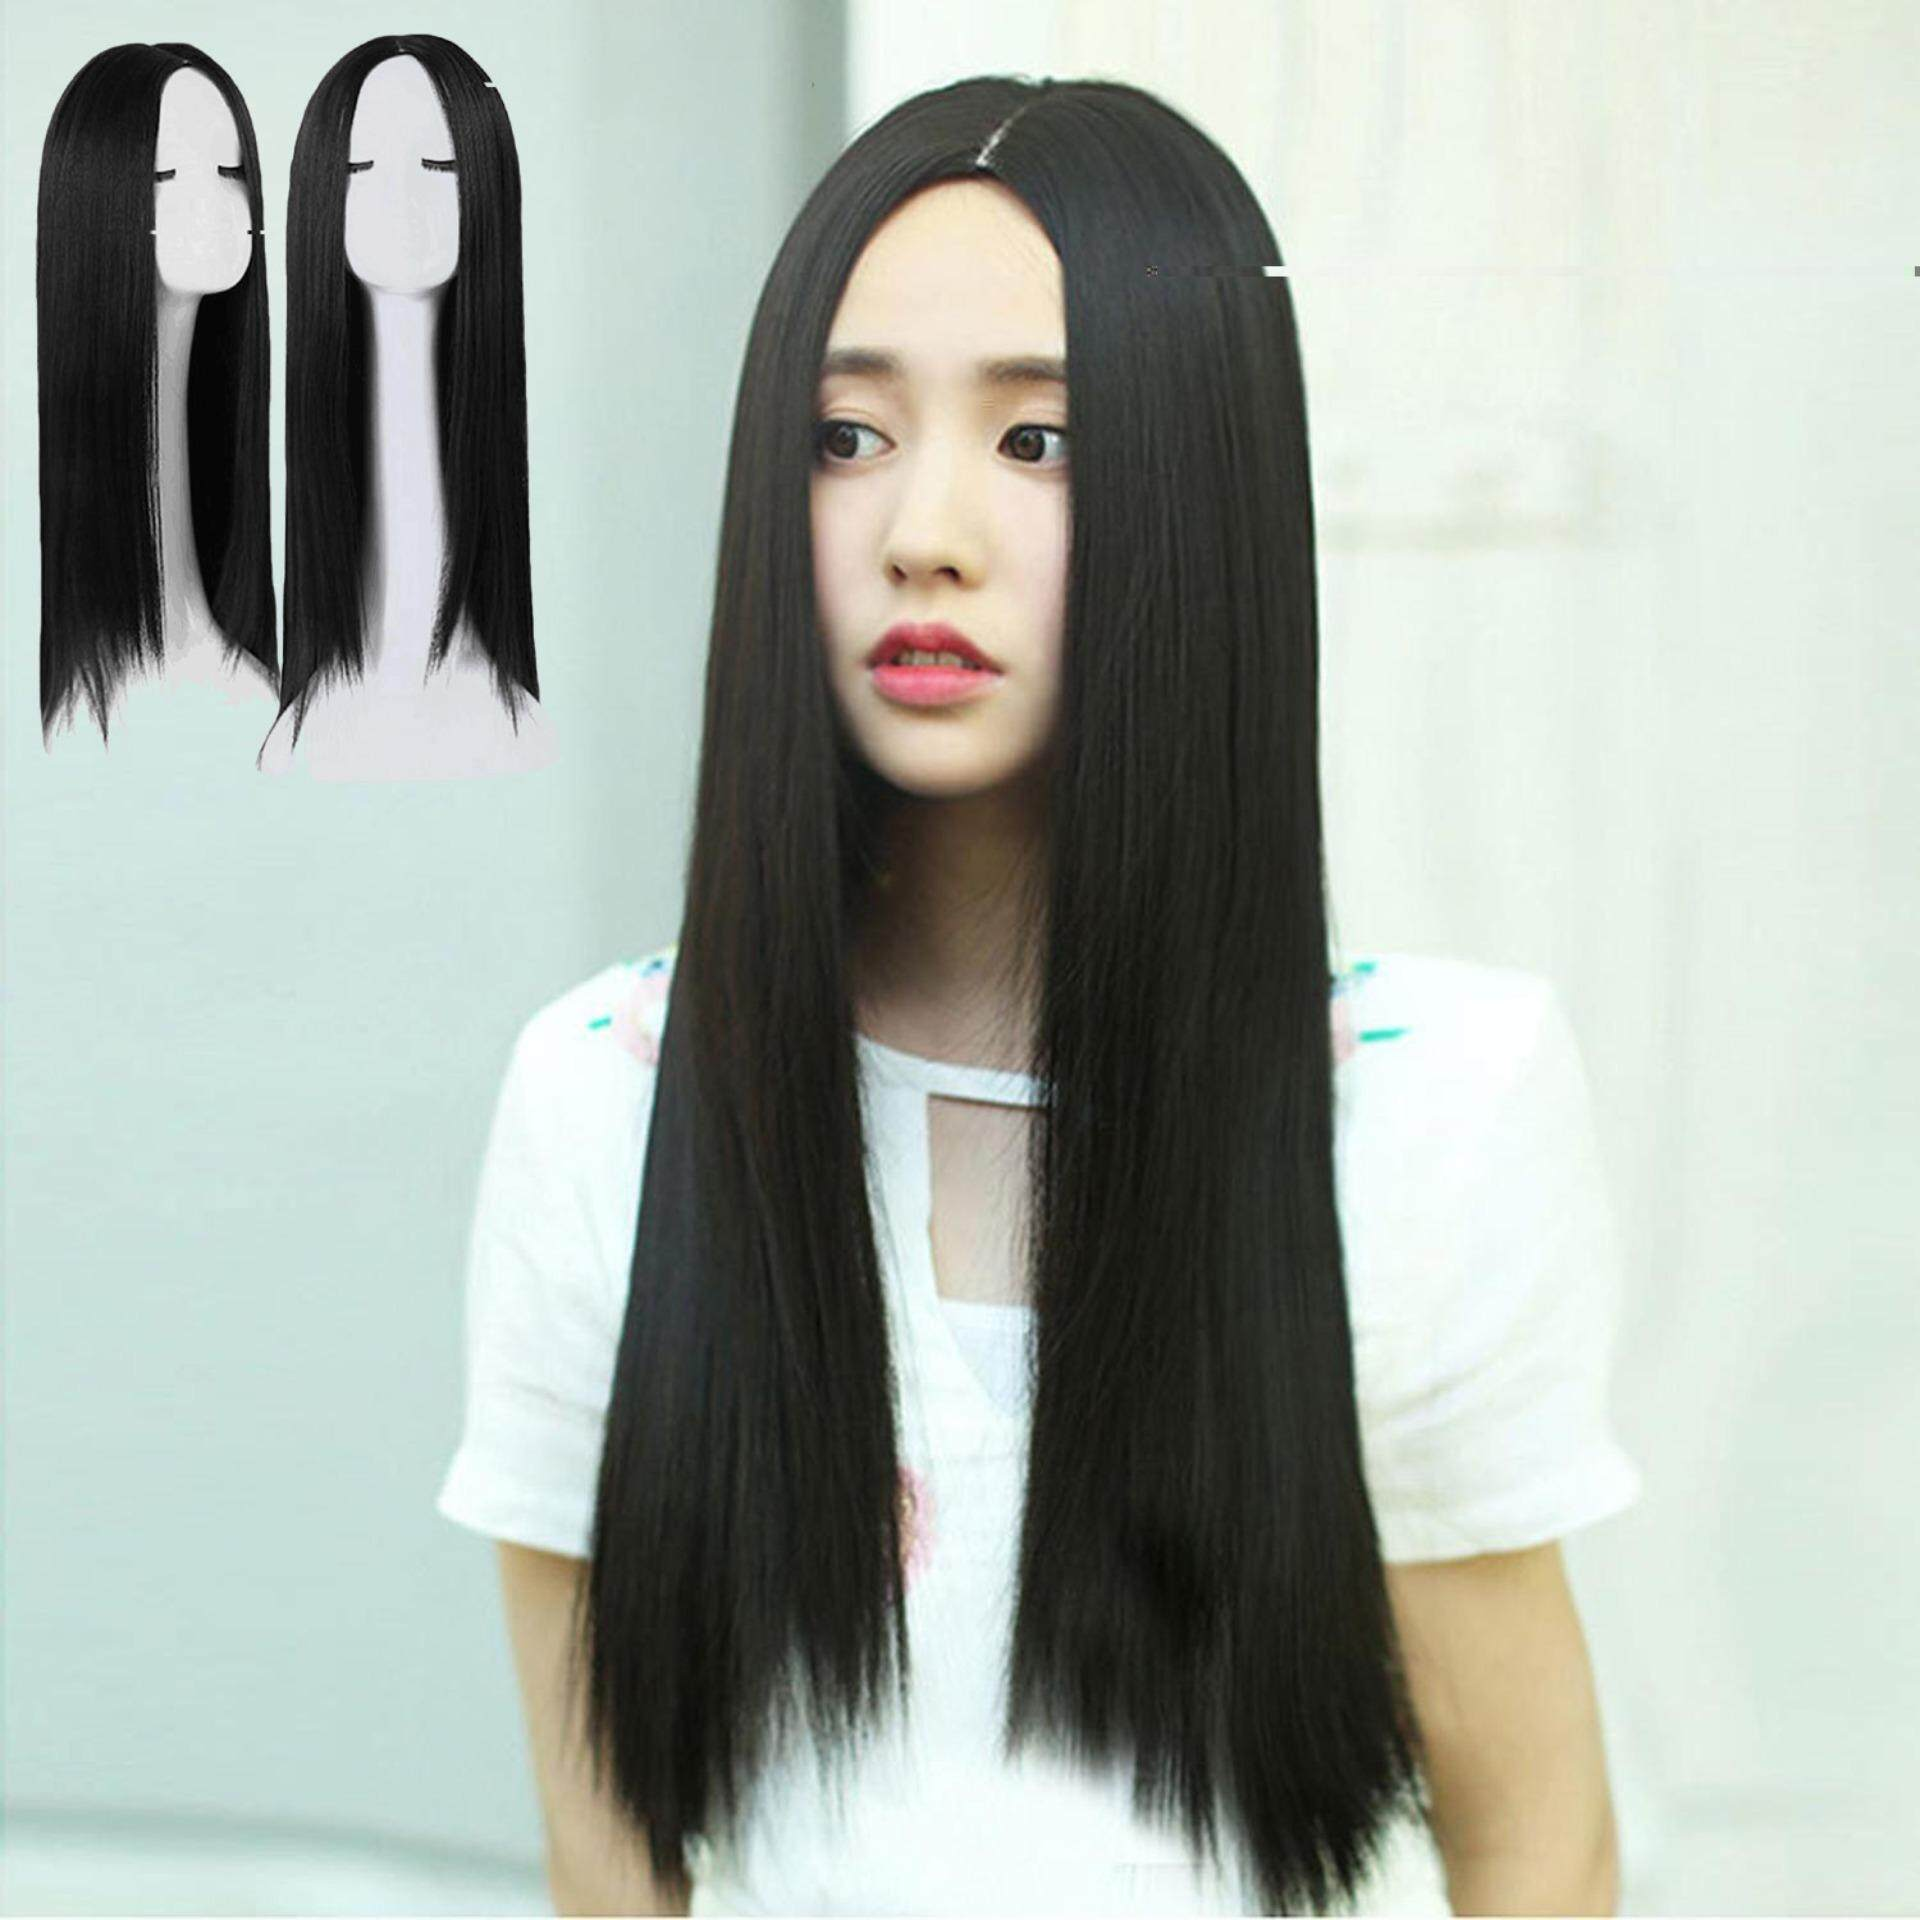 Women Fashion Long Straight Hair Extensions Wig for Daily Wear Appointment  Party Cosplay Costume Black 7863149458